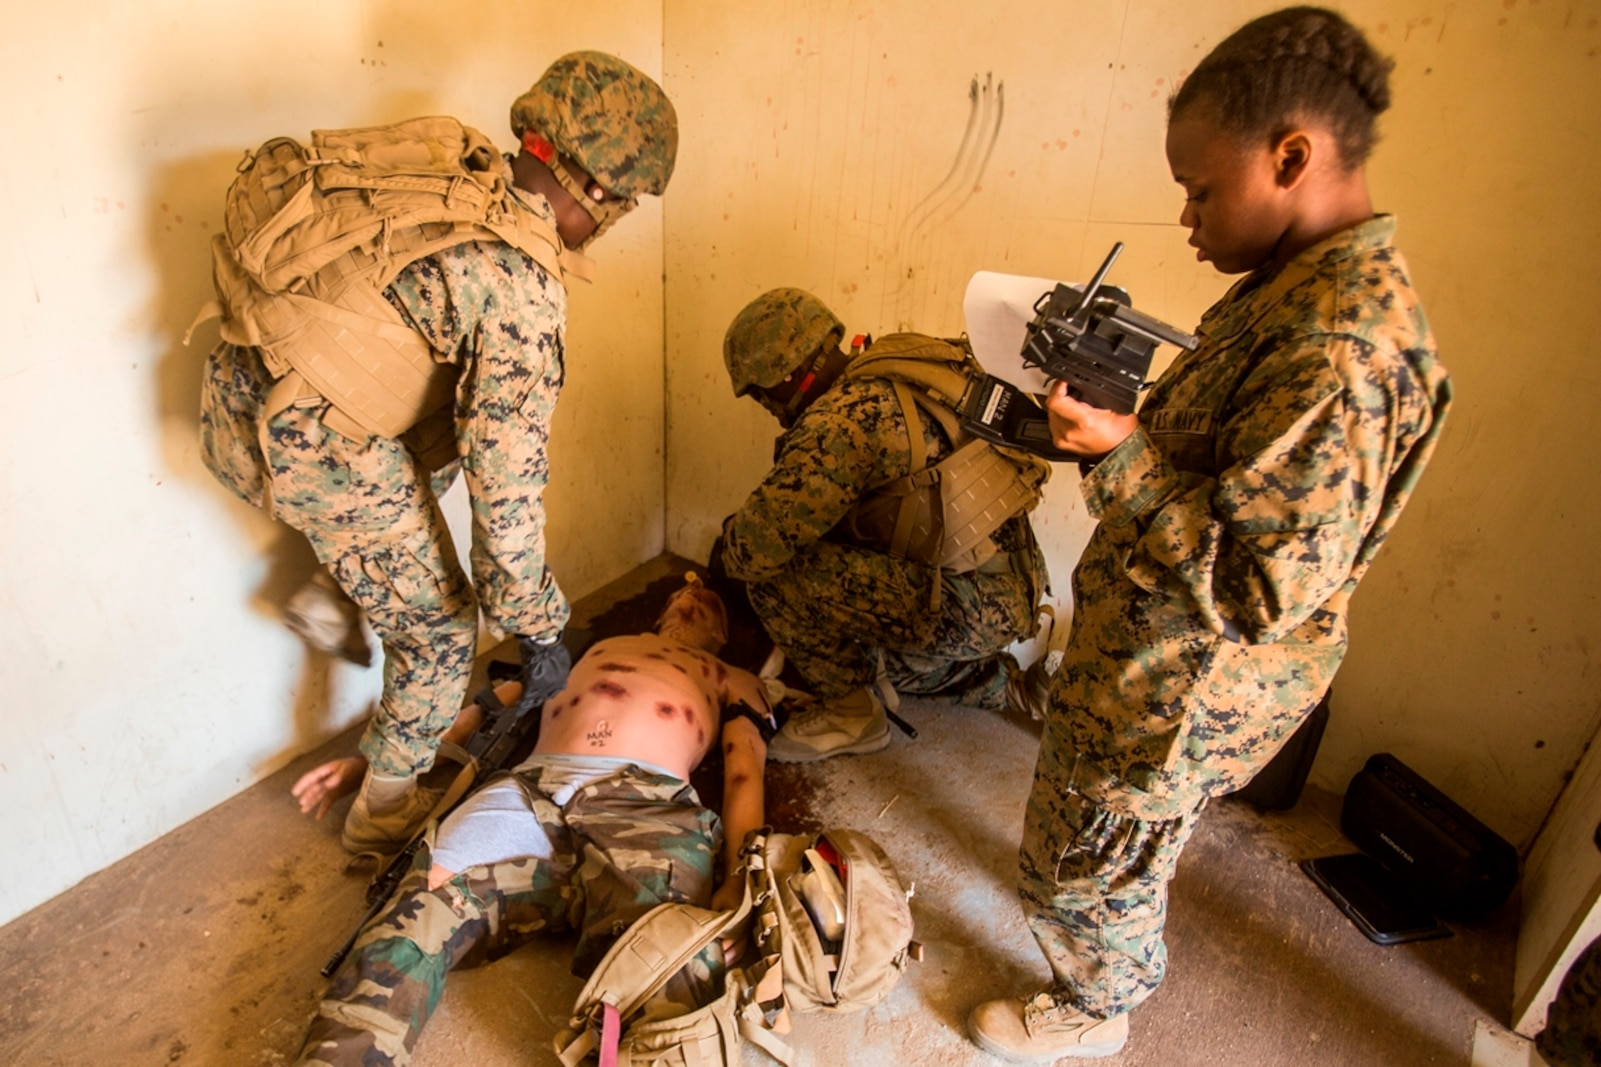 U.S. Marines treat a trauma manikin while being evaluated by a U.S. Navy corpsman during a field medical exercise on Marine Corps Base Camp Pendleton, Calif., Jul. 18, 2017. The trauma manikins provide students with are not only anatomically correct but allow training on various wounds to include amputation, sucking chest wounds, fractures, gunshot wounds, abdominal eviscerations and airway compromise due to facial trauma.